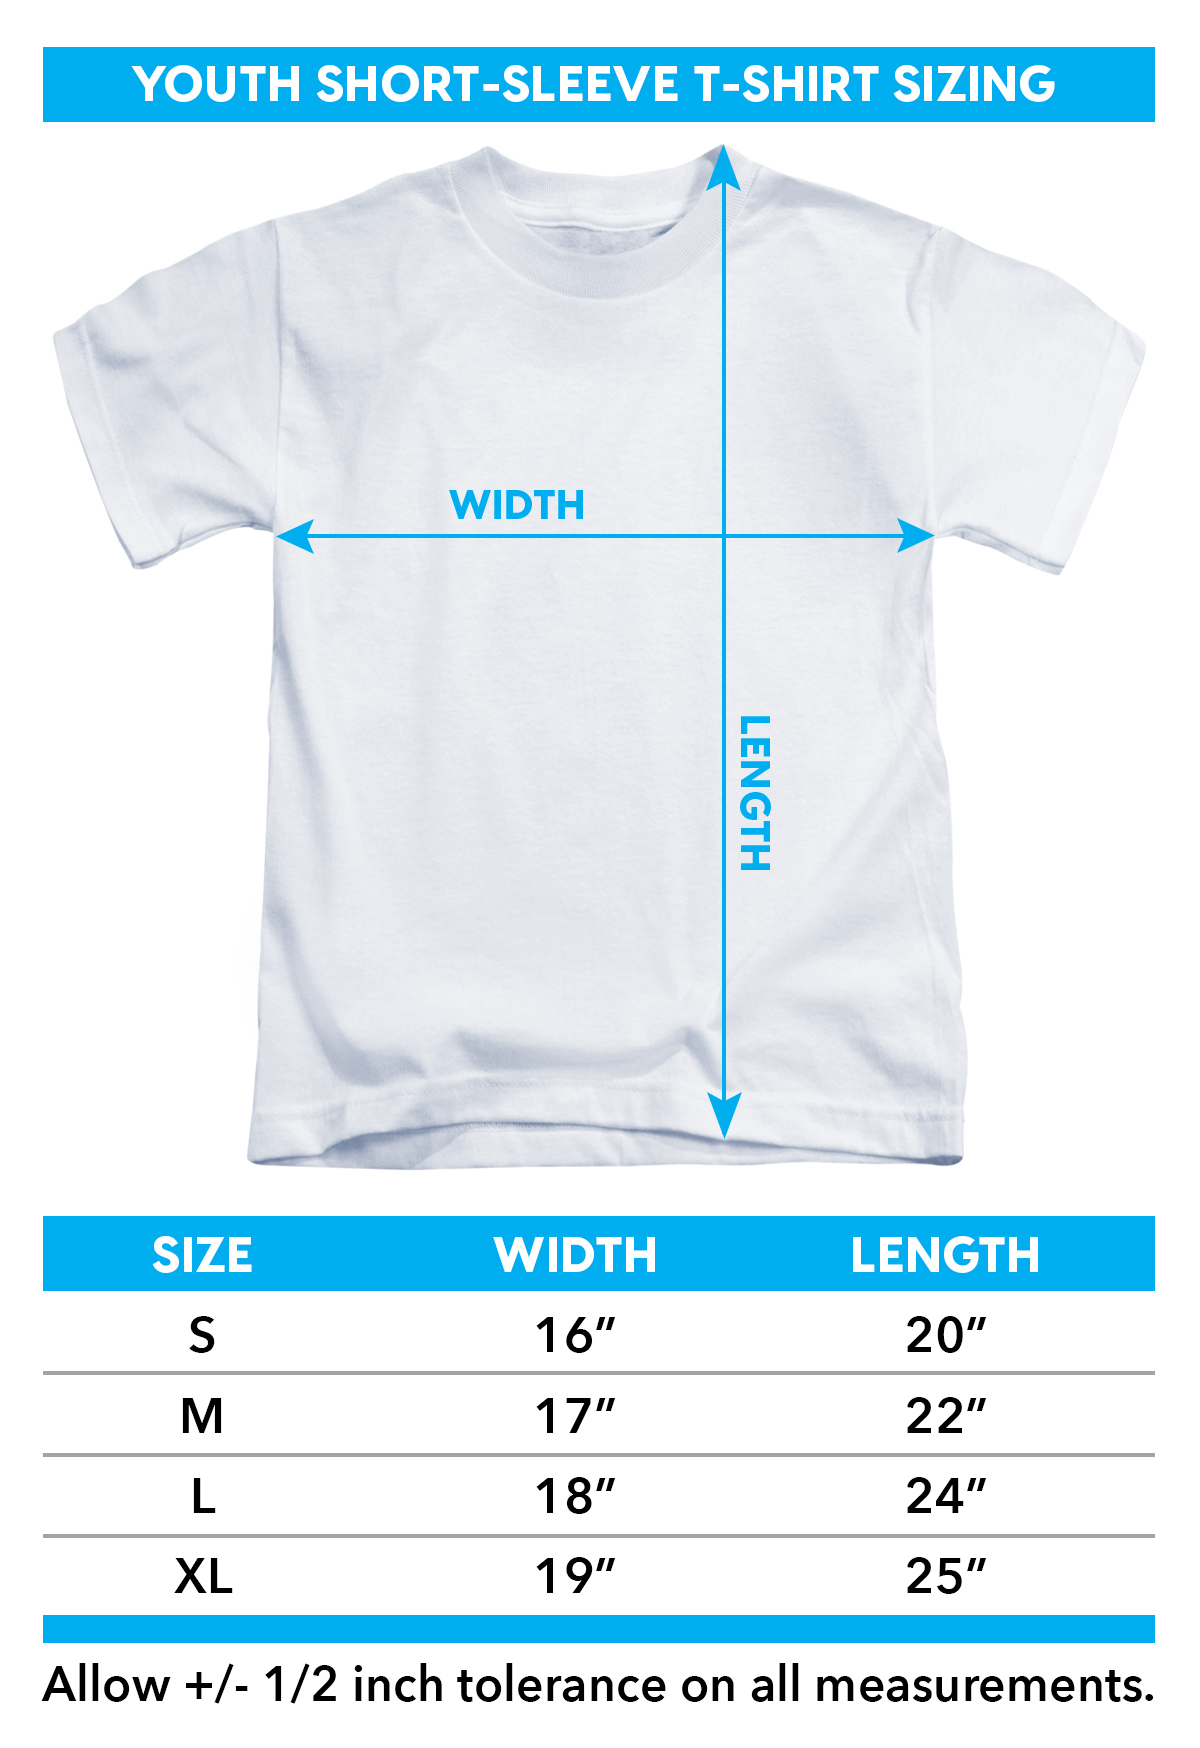 Sizing chart for Labyrinth Youth T-Shirt - Movie Poster TRV-LAB101-YT